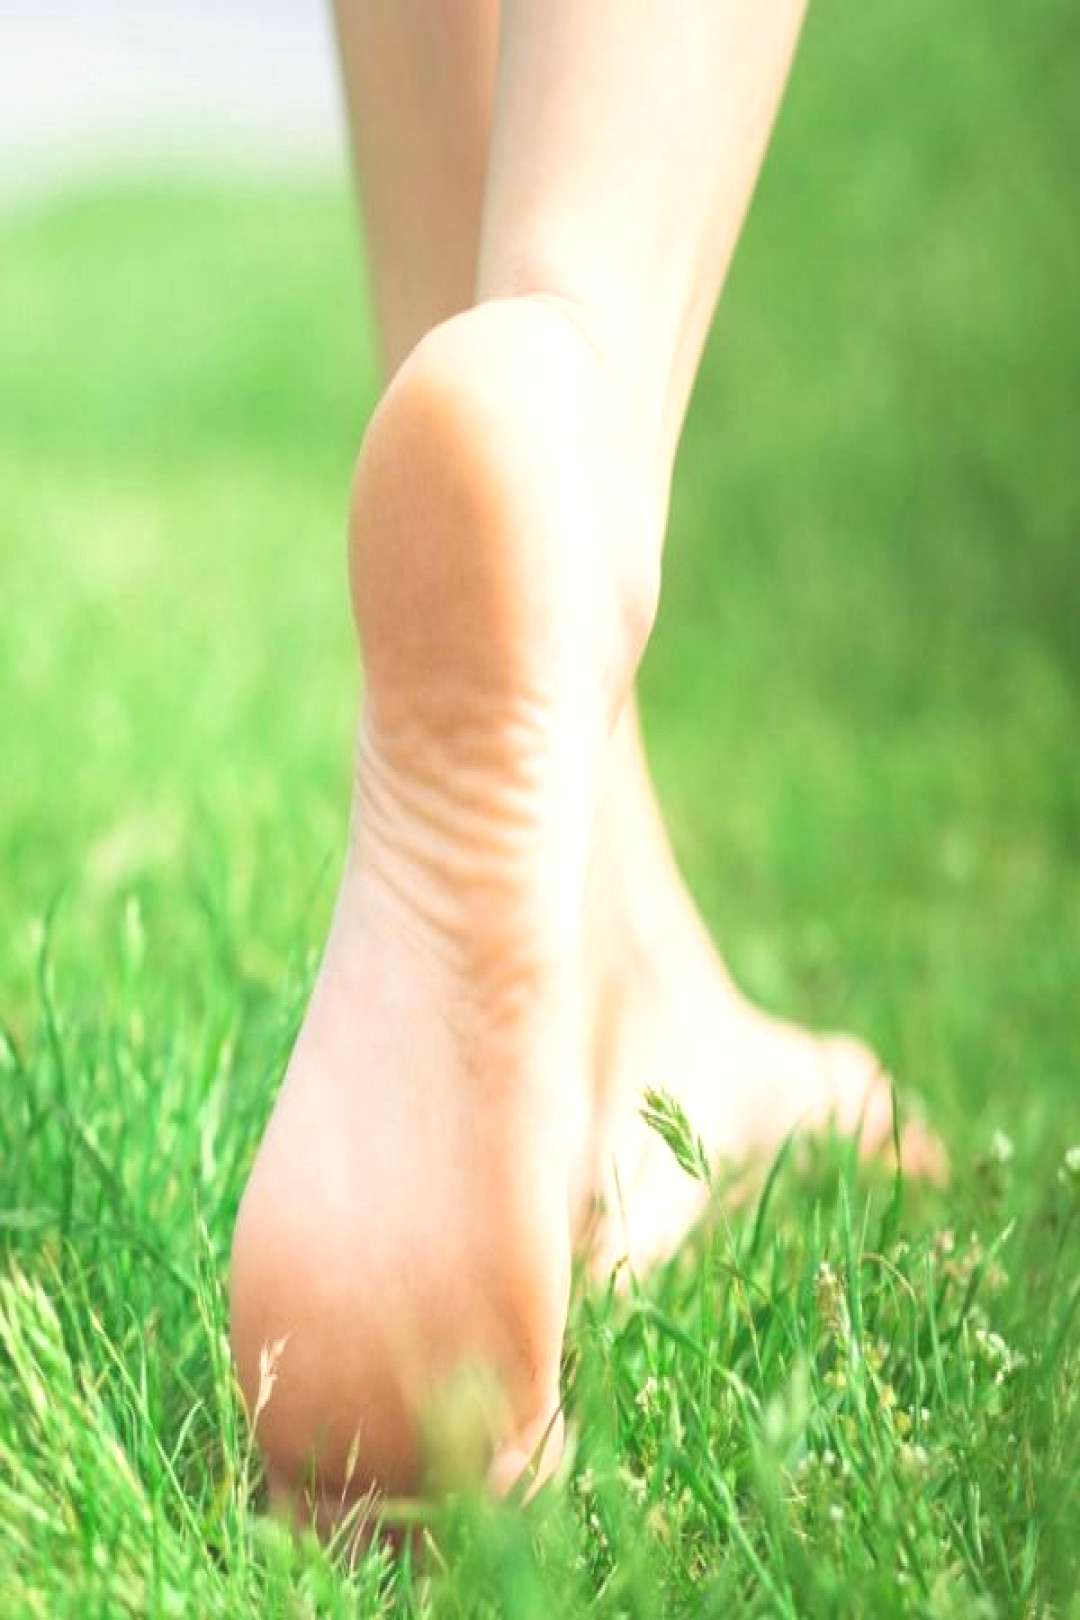 What diseases can you get from walking around barefoot? In this video, Dr. R. K. Tanwar, Retd. Prof